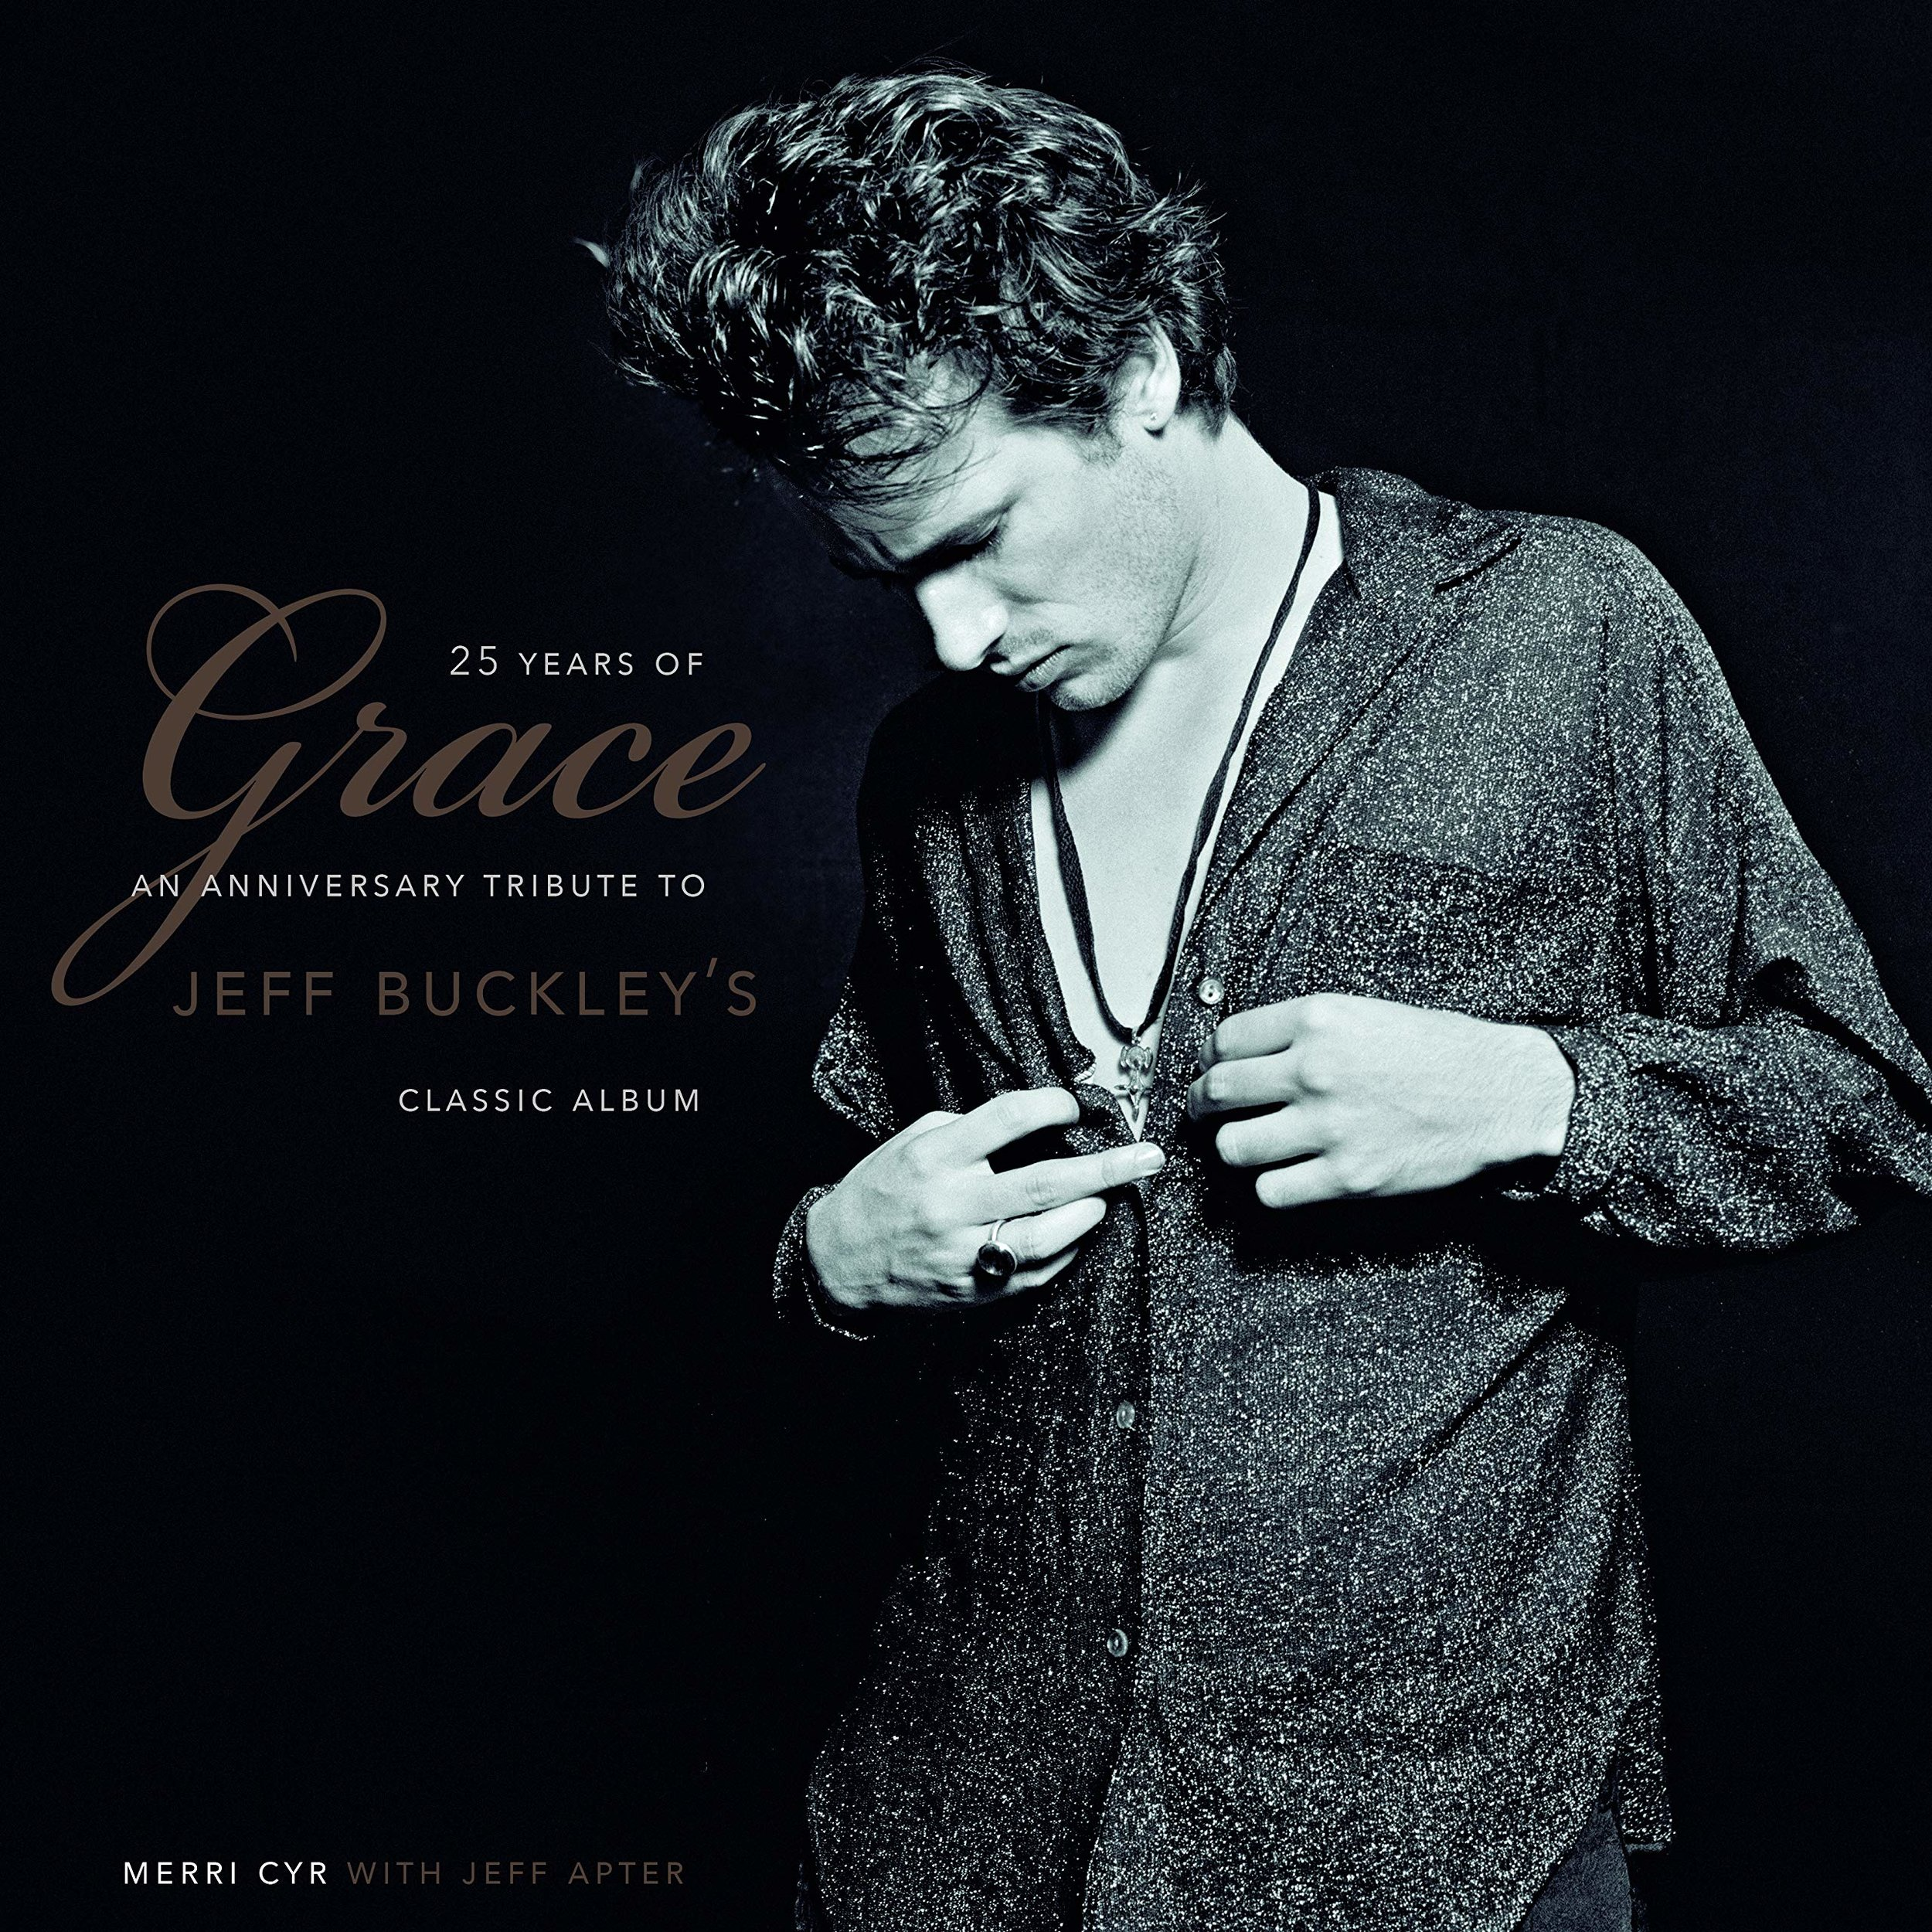 25 Years of Grace - An Anniversary Tribute to Jeff Buckley's Classic Album